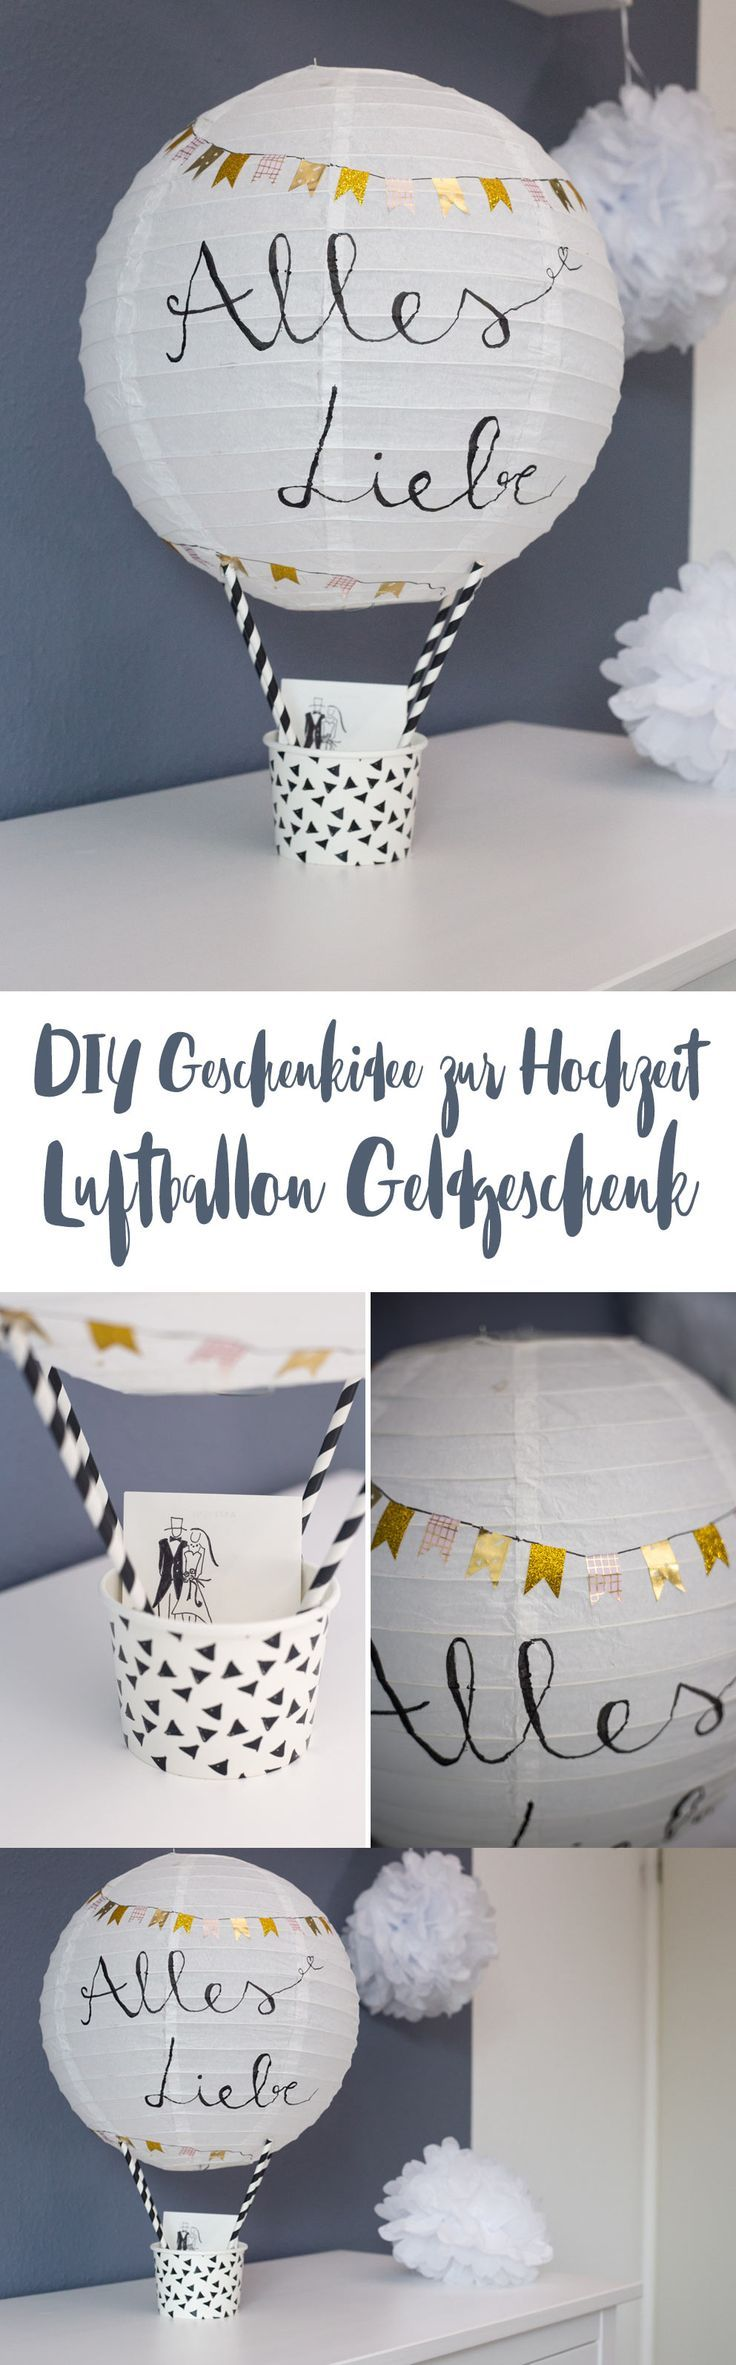 diy geschenkidee zur hochzeit hei luftballon geldgeschenk basteln diy inspiration. Black Bedroom Furniture Sets. Home Design Ideas